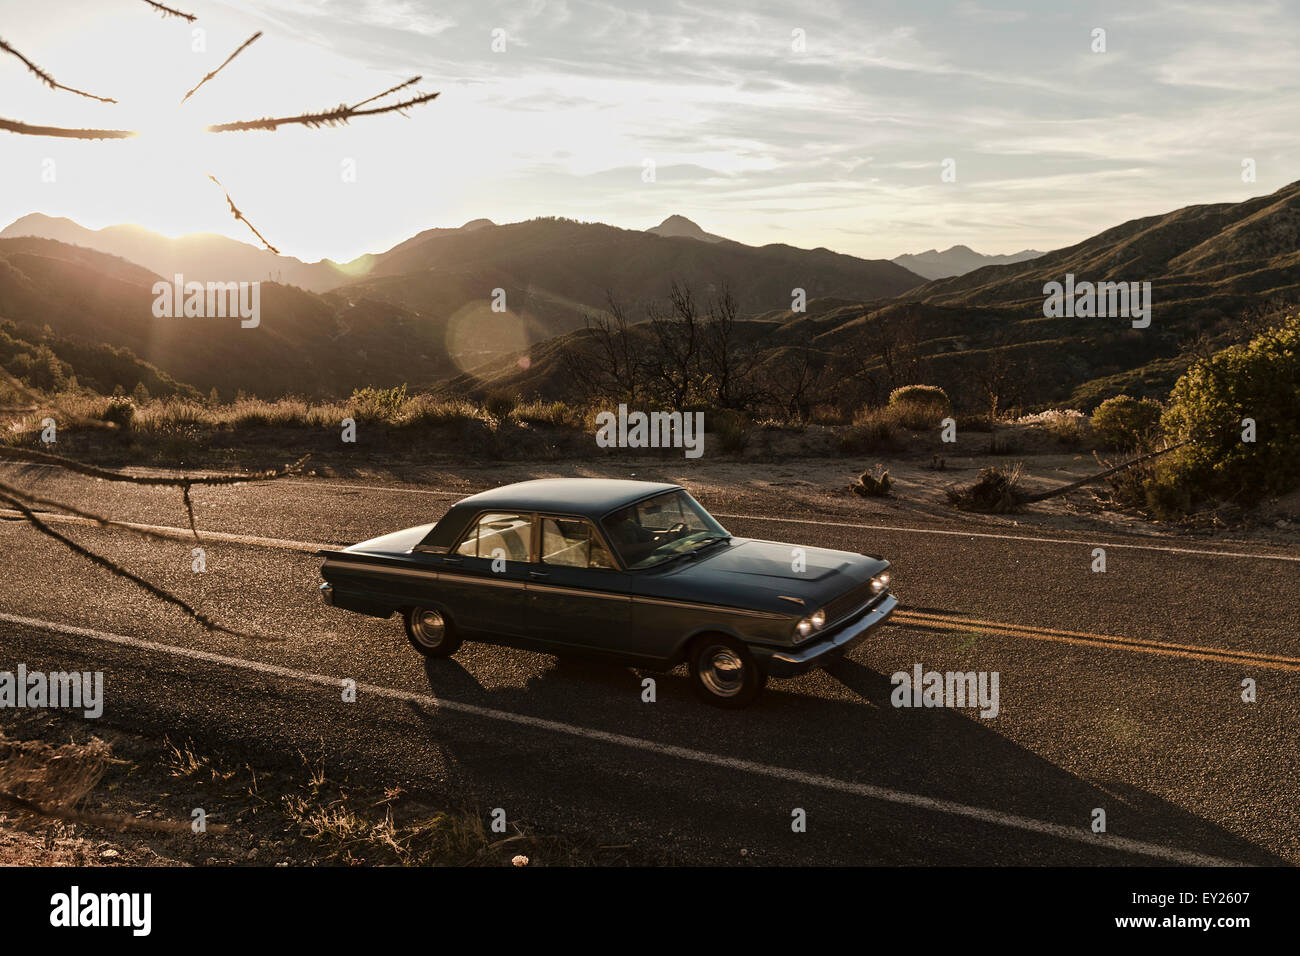 Young man driving vintage car on road trip in desert, Los Angeles, California, USA Stock Photo